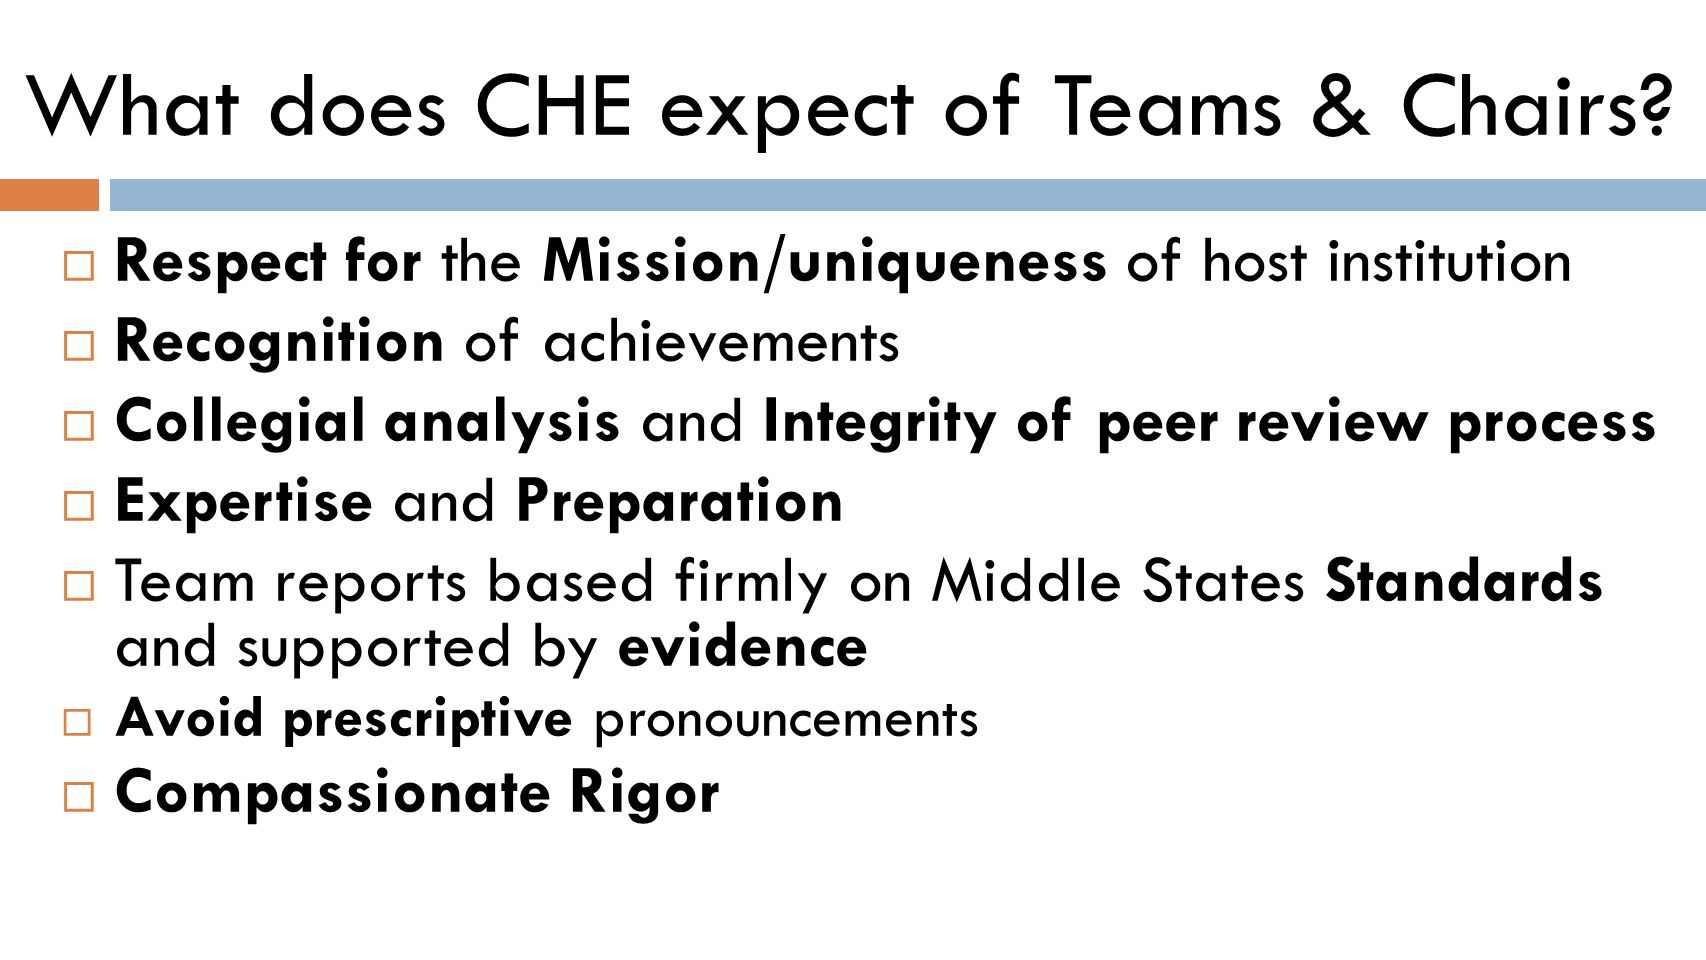 What does CHE expect of Teams & Chairs